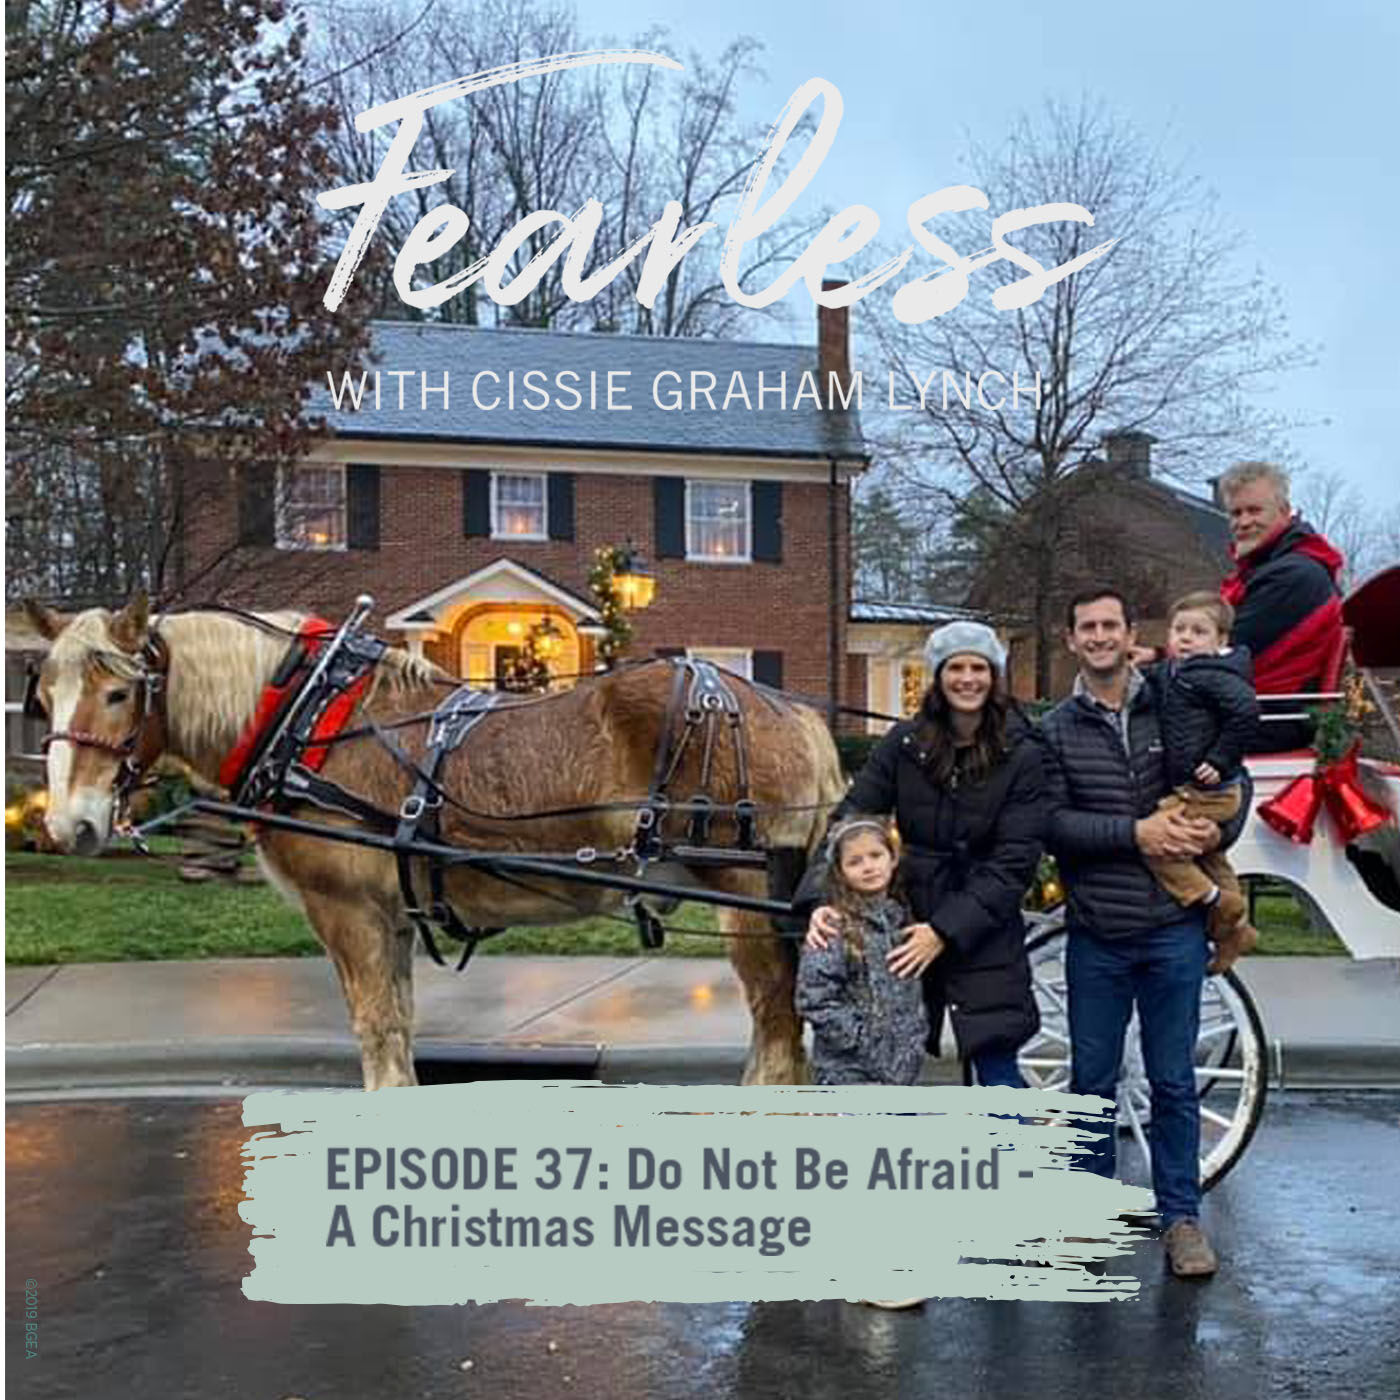 Episode 37: Do Not Be Afraid – A Christmas Message